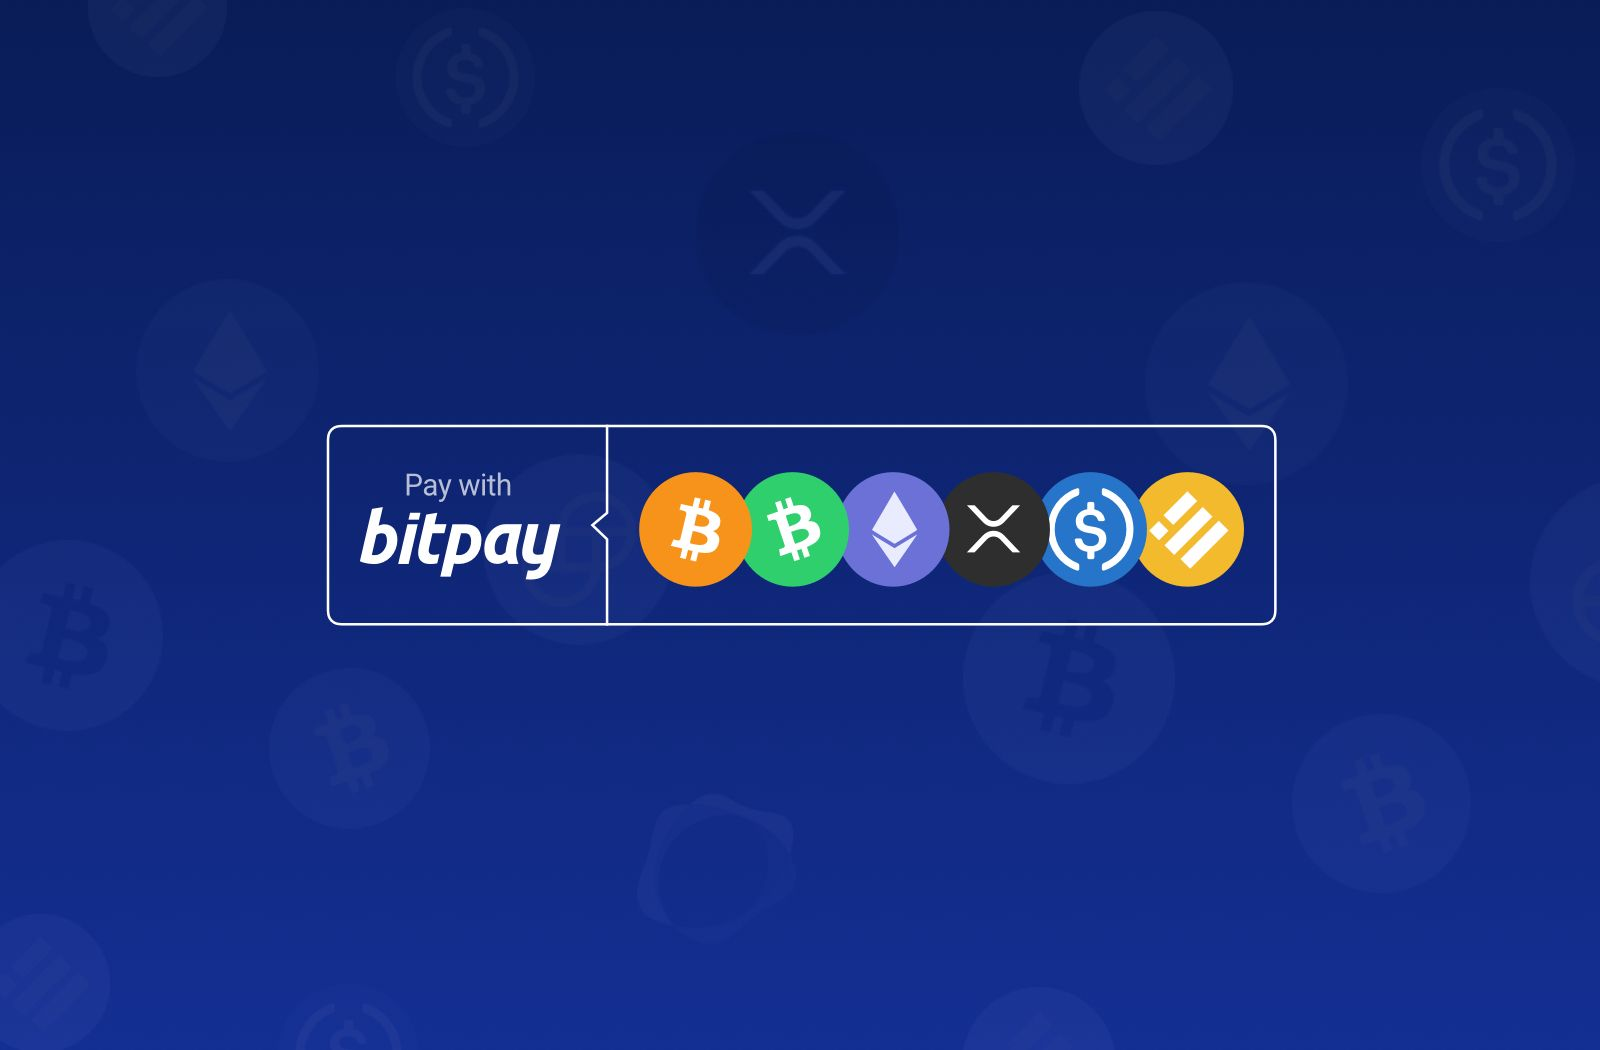 BitPay's process for adding new cryptocurrencies